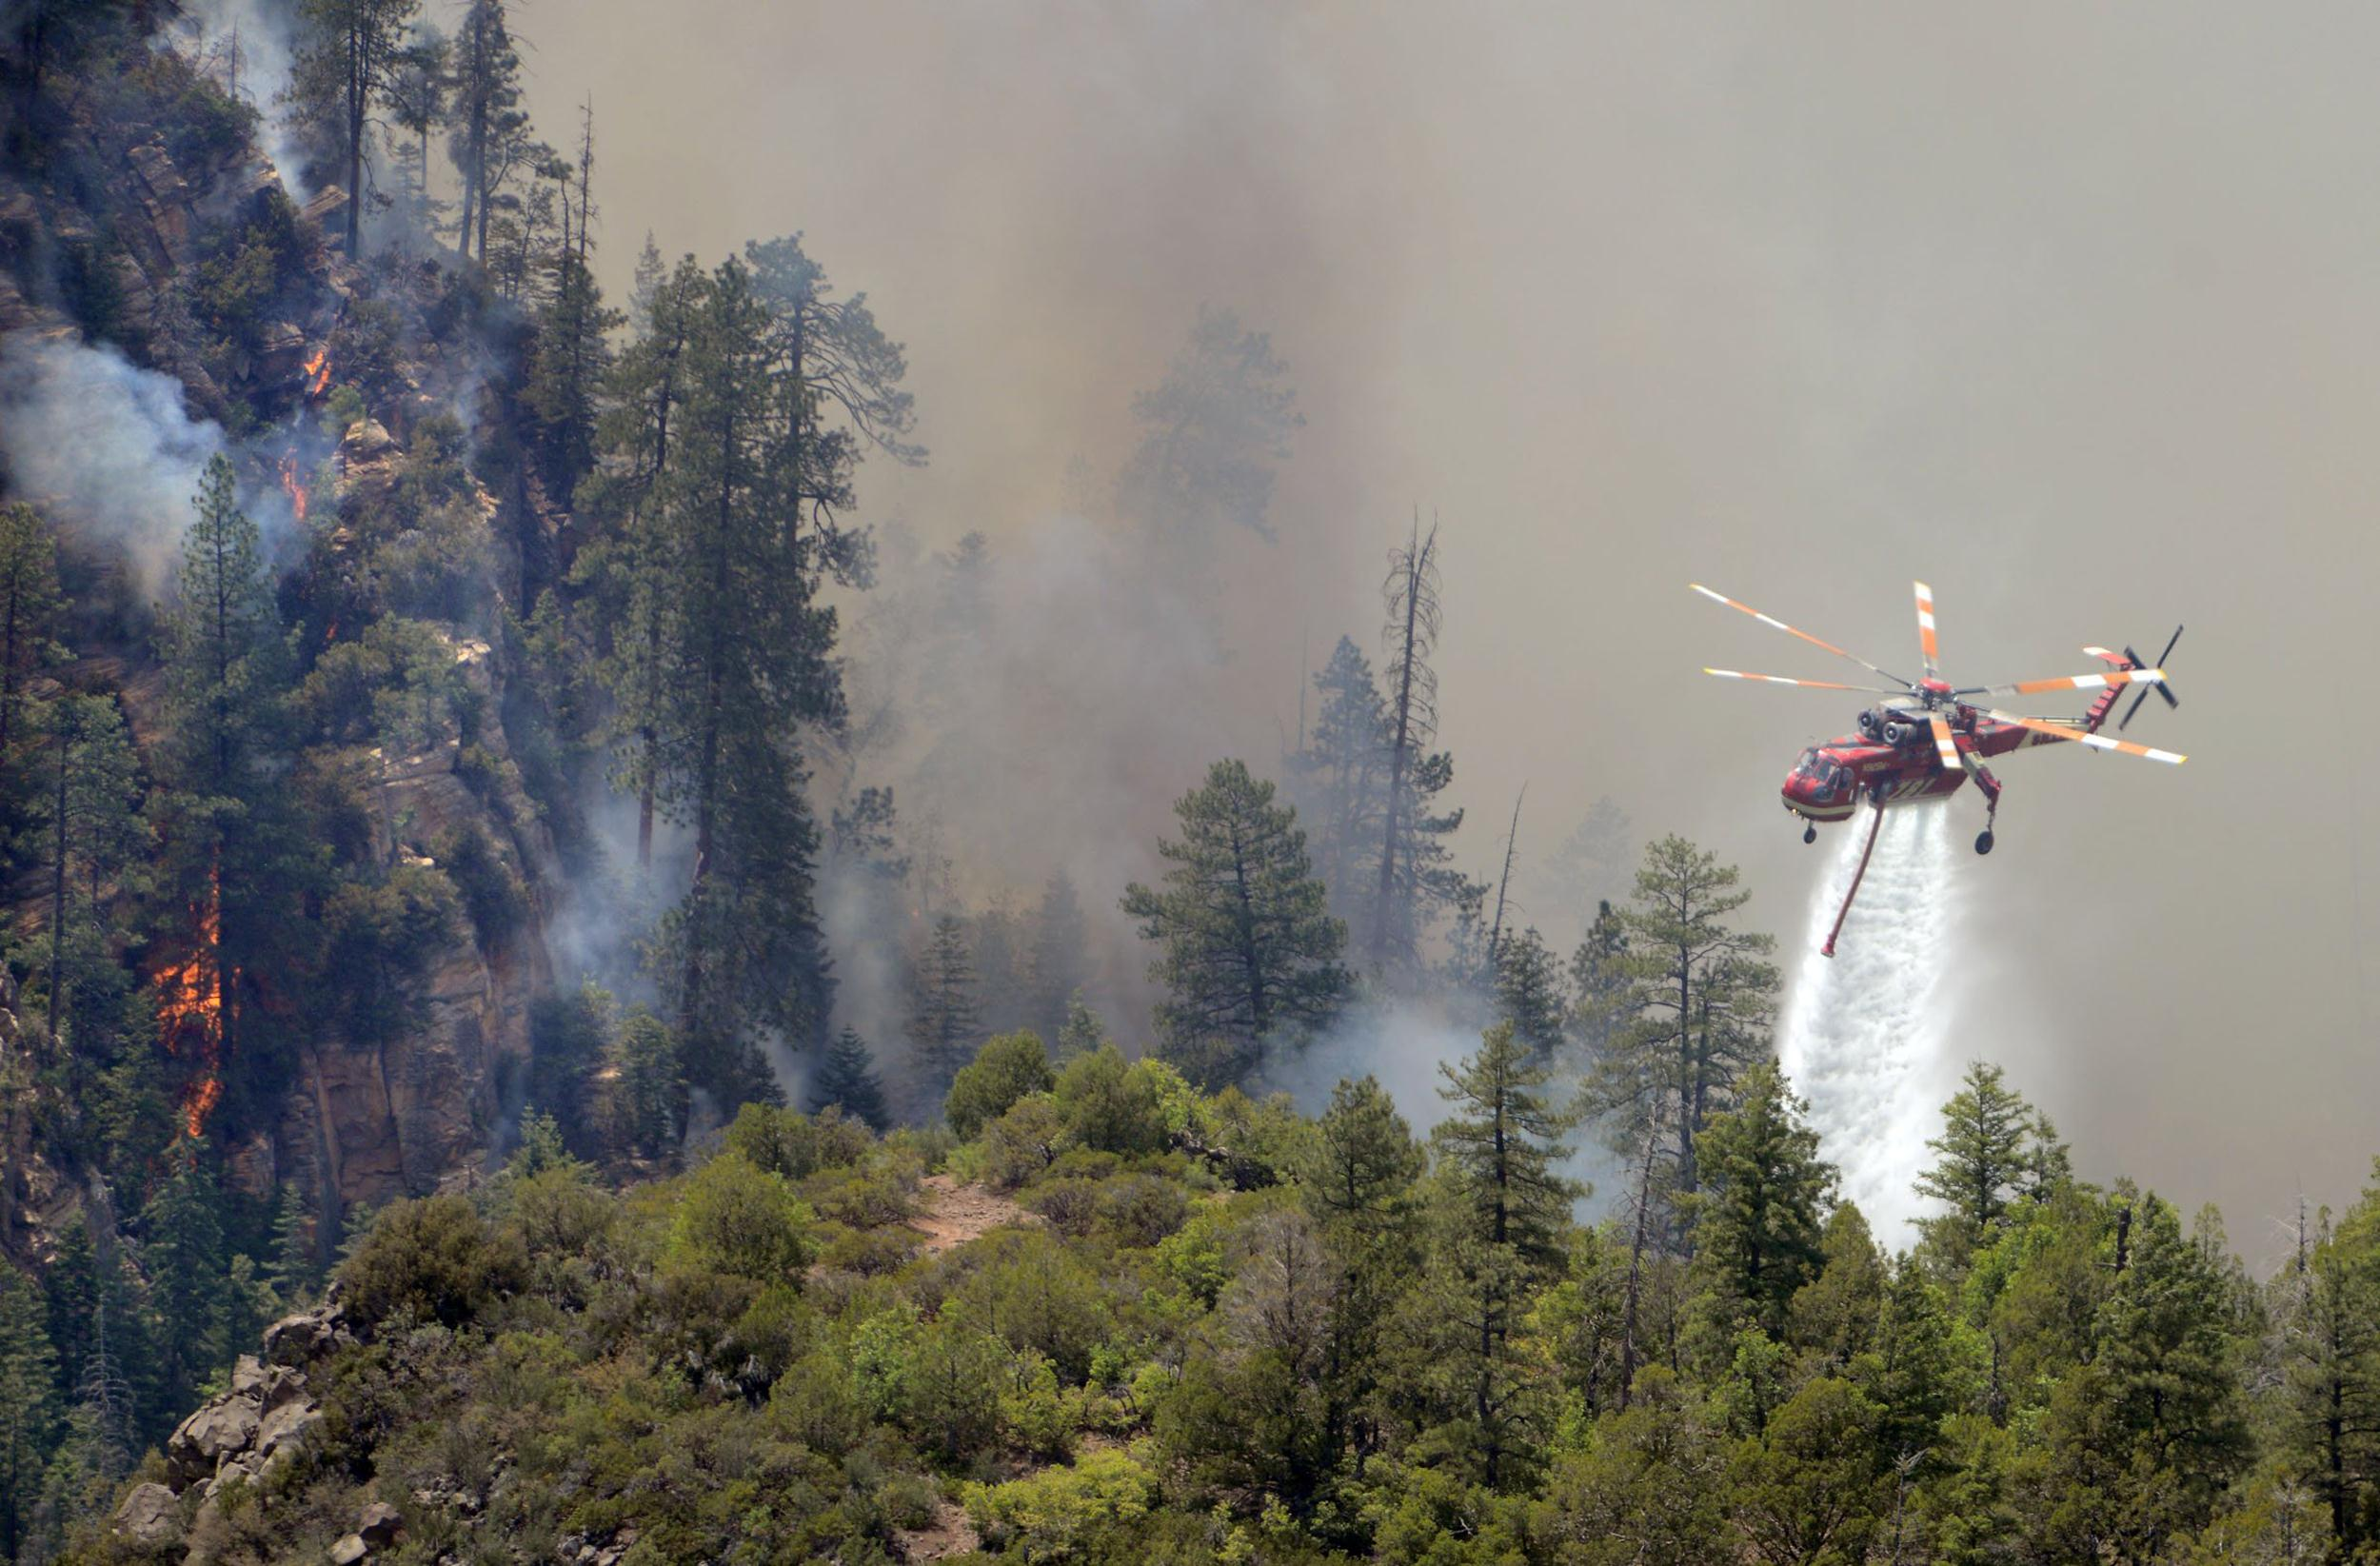 Image: A firefighting helicopter drops water on a forest fire in Oak Creak Canyon in Sedona, Ariz